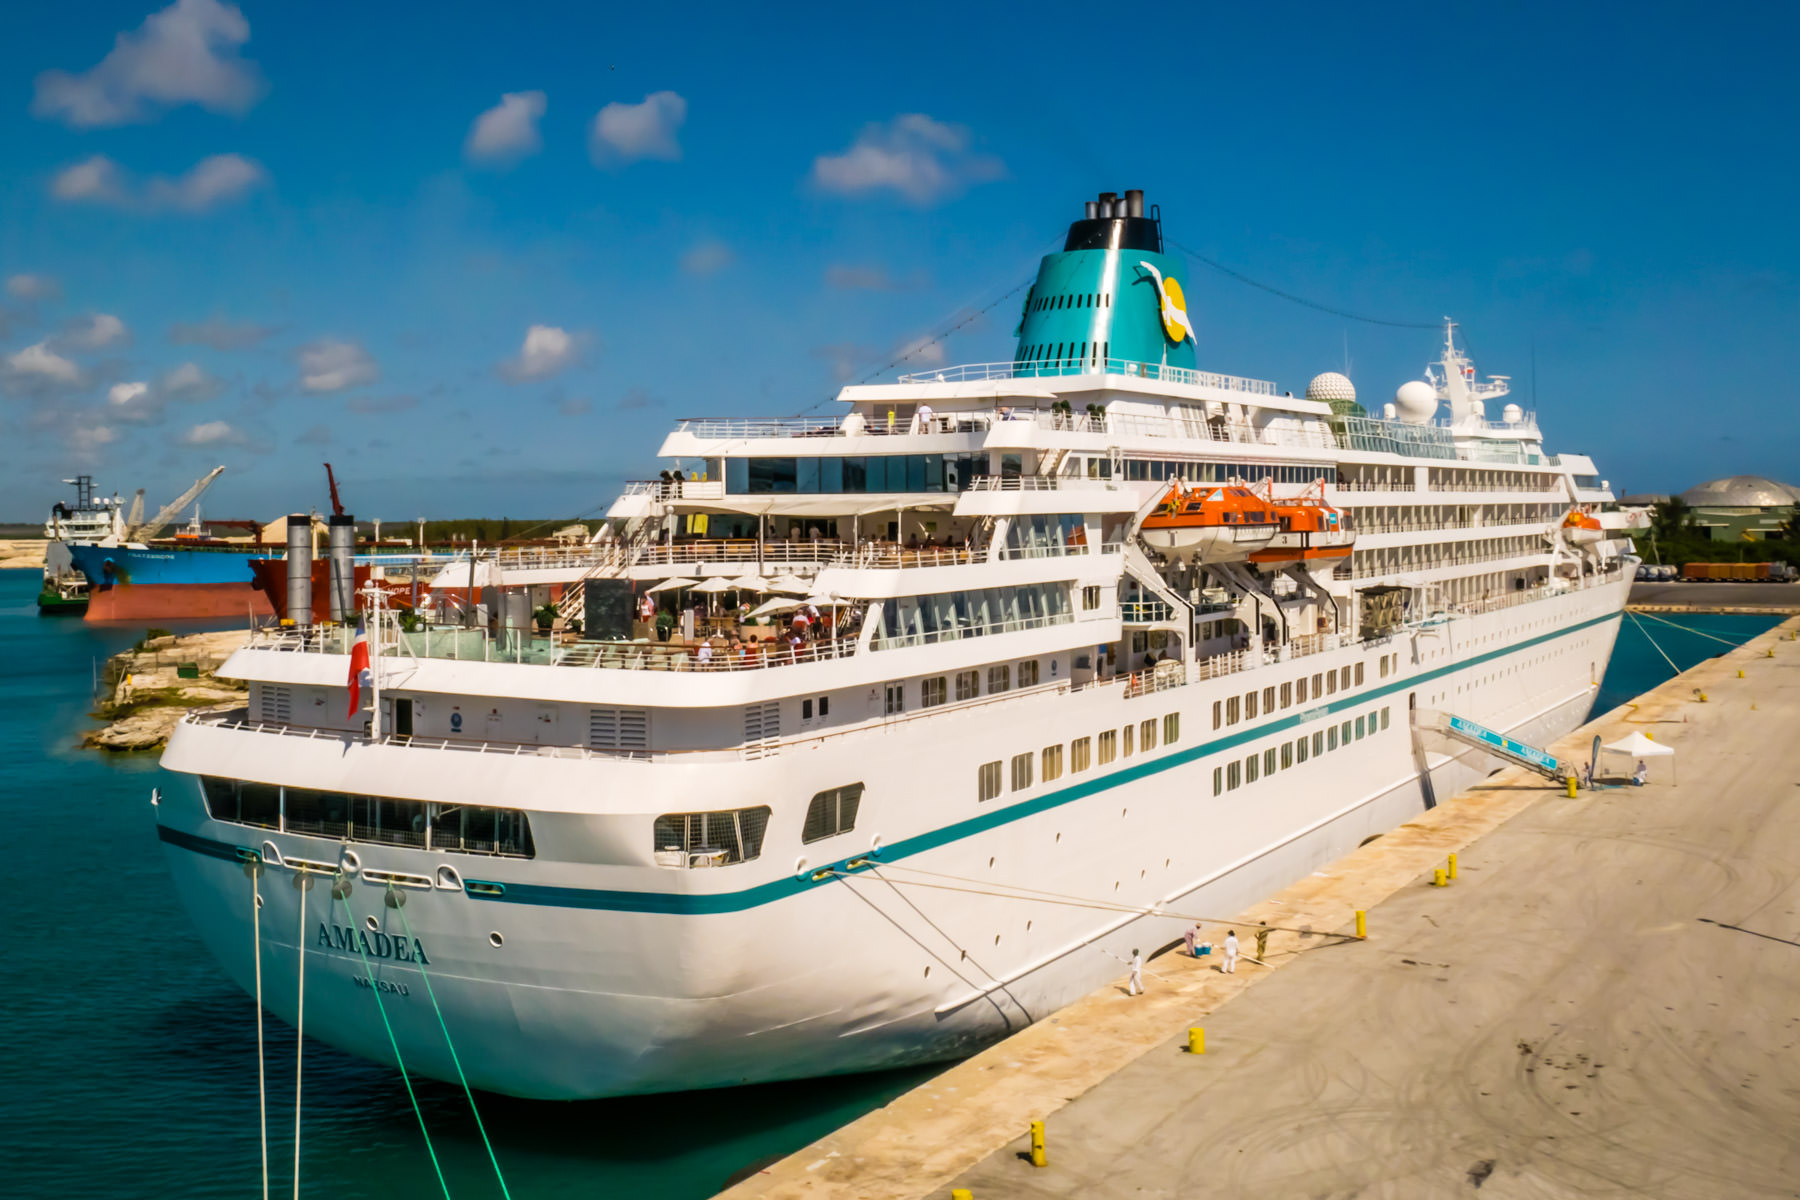 The cruise ship MS Amadea, docked in Freeport, Bahamas.